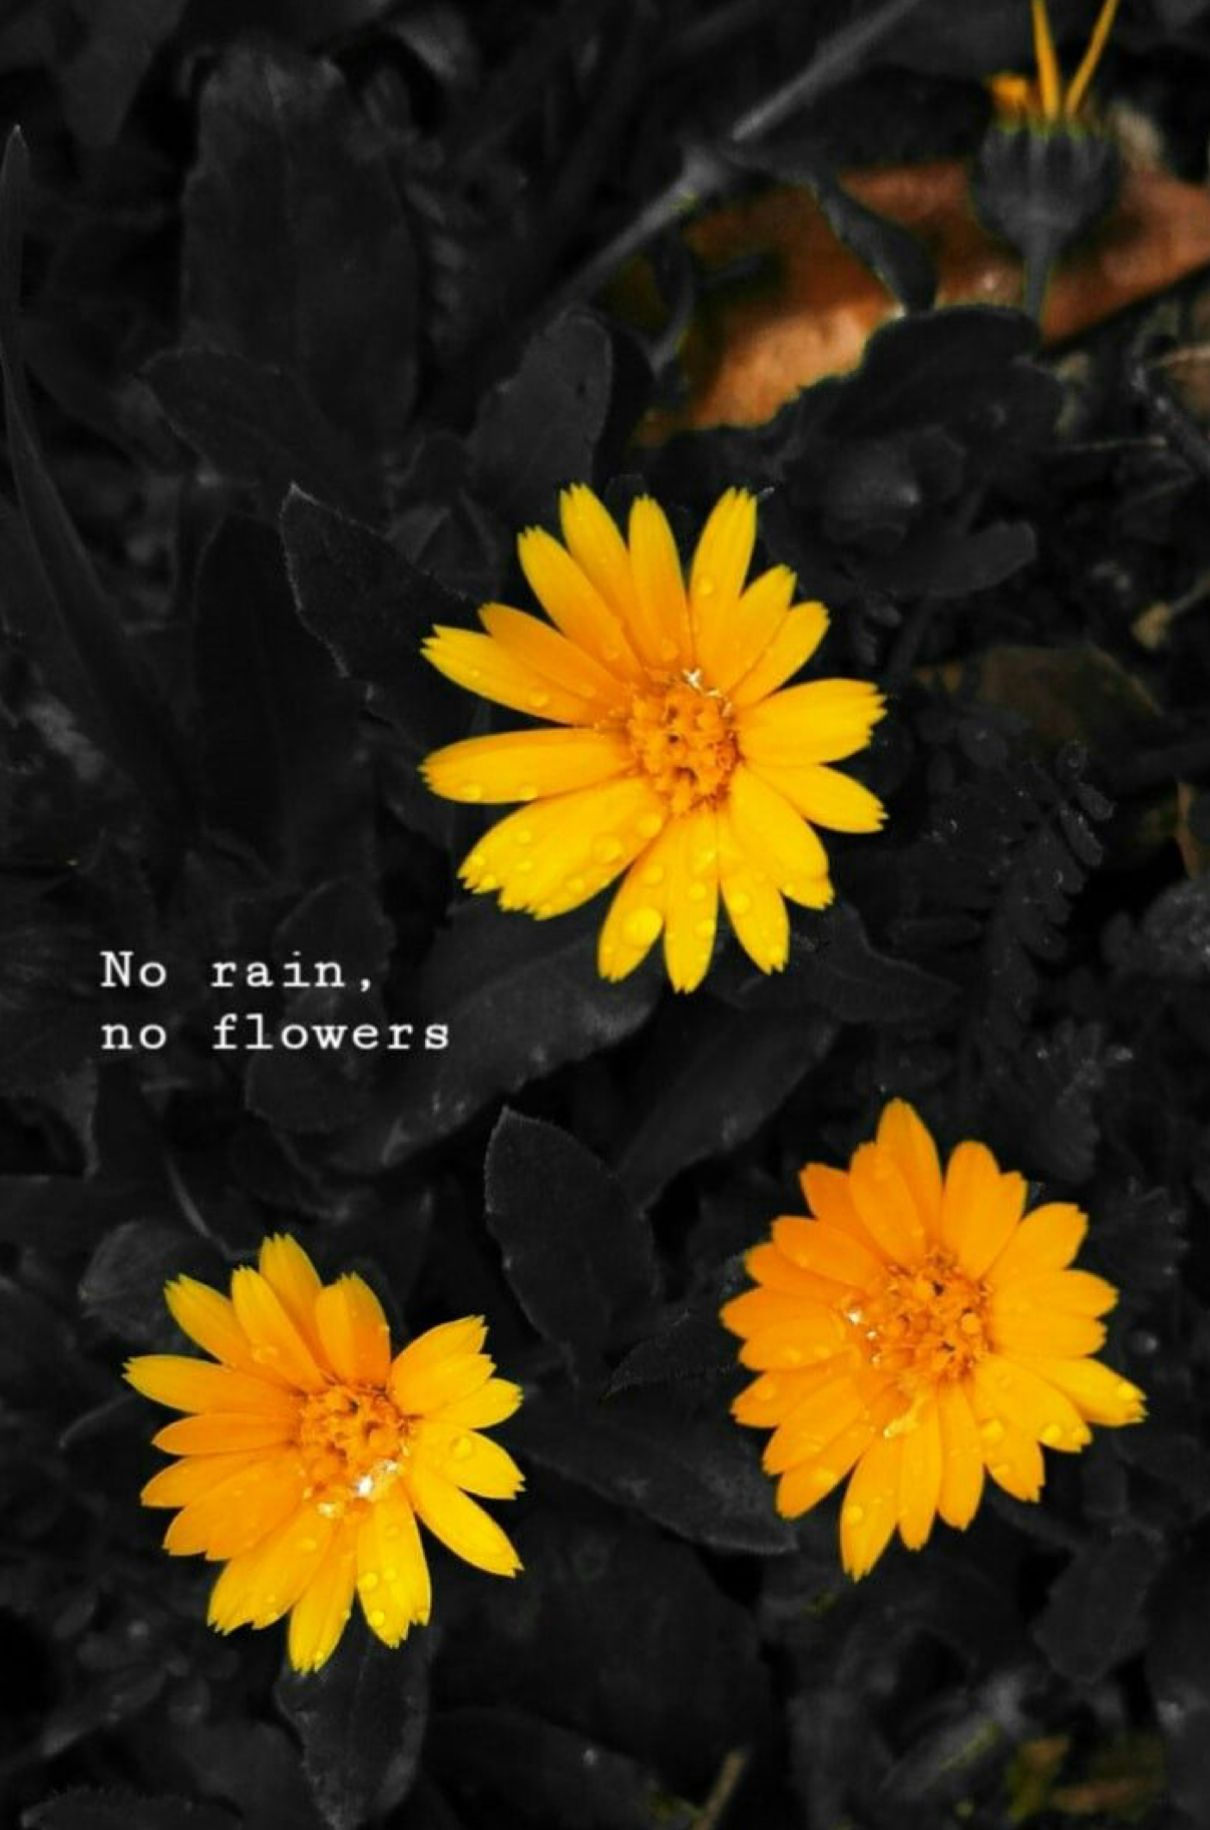 Pin by Zoe Williams on Words Flowers quotes tumblr